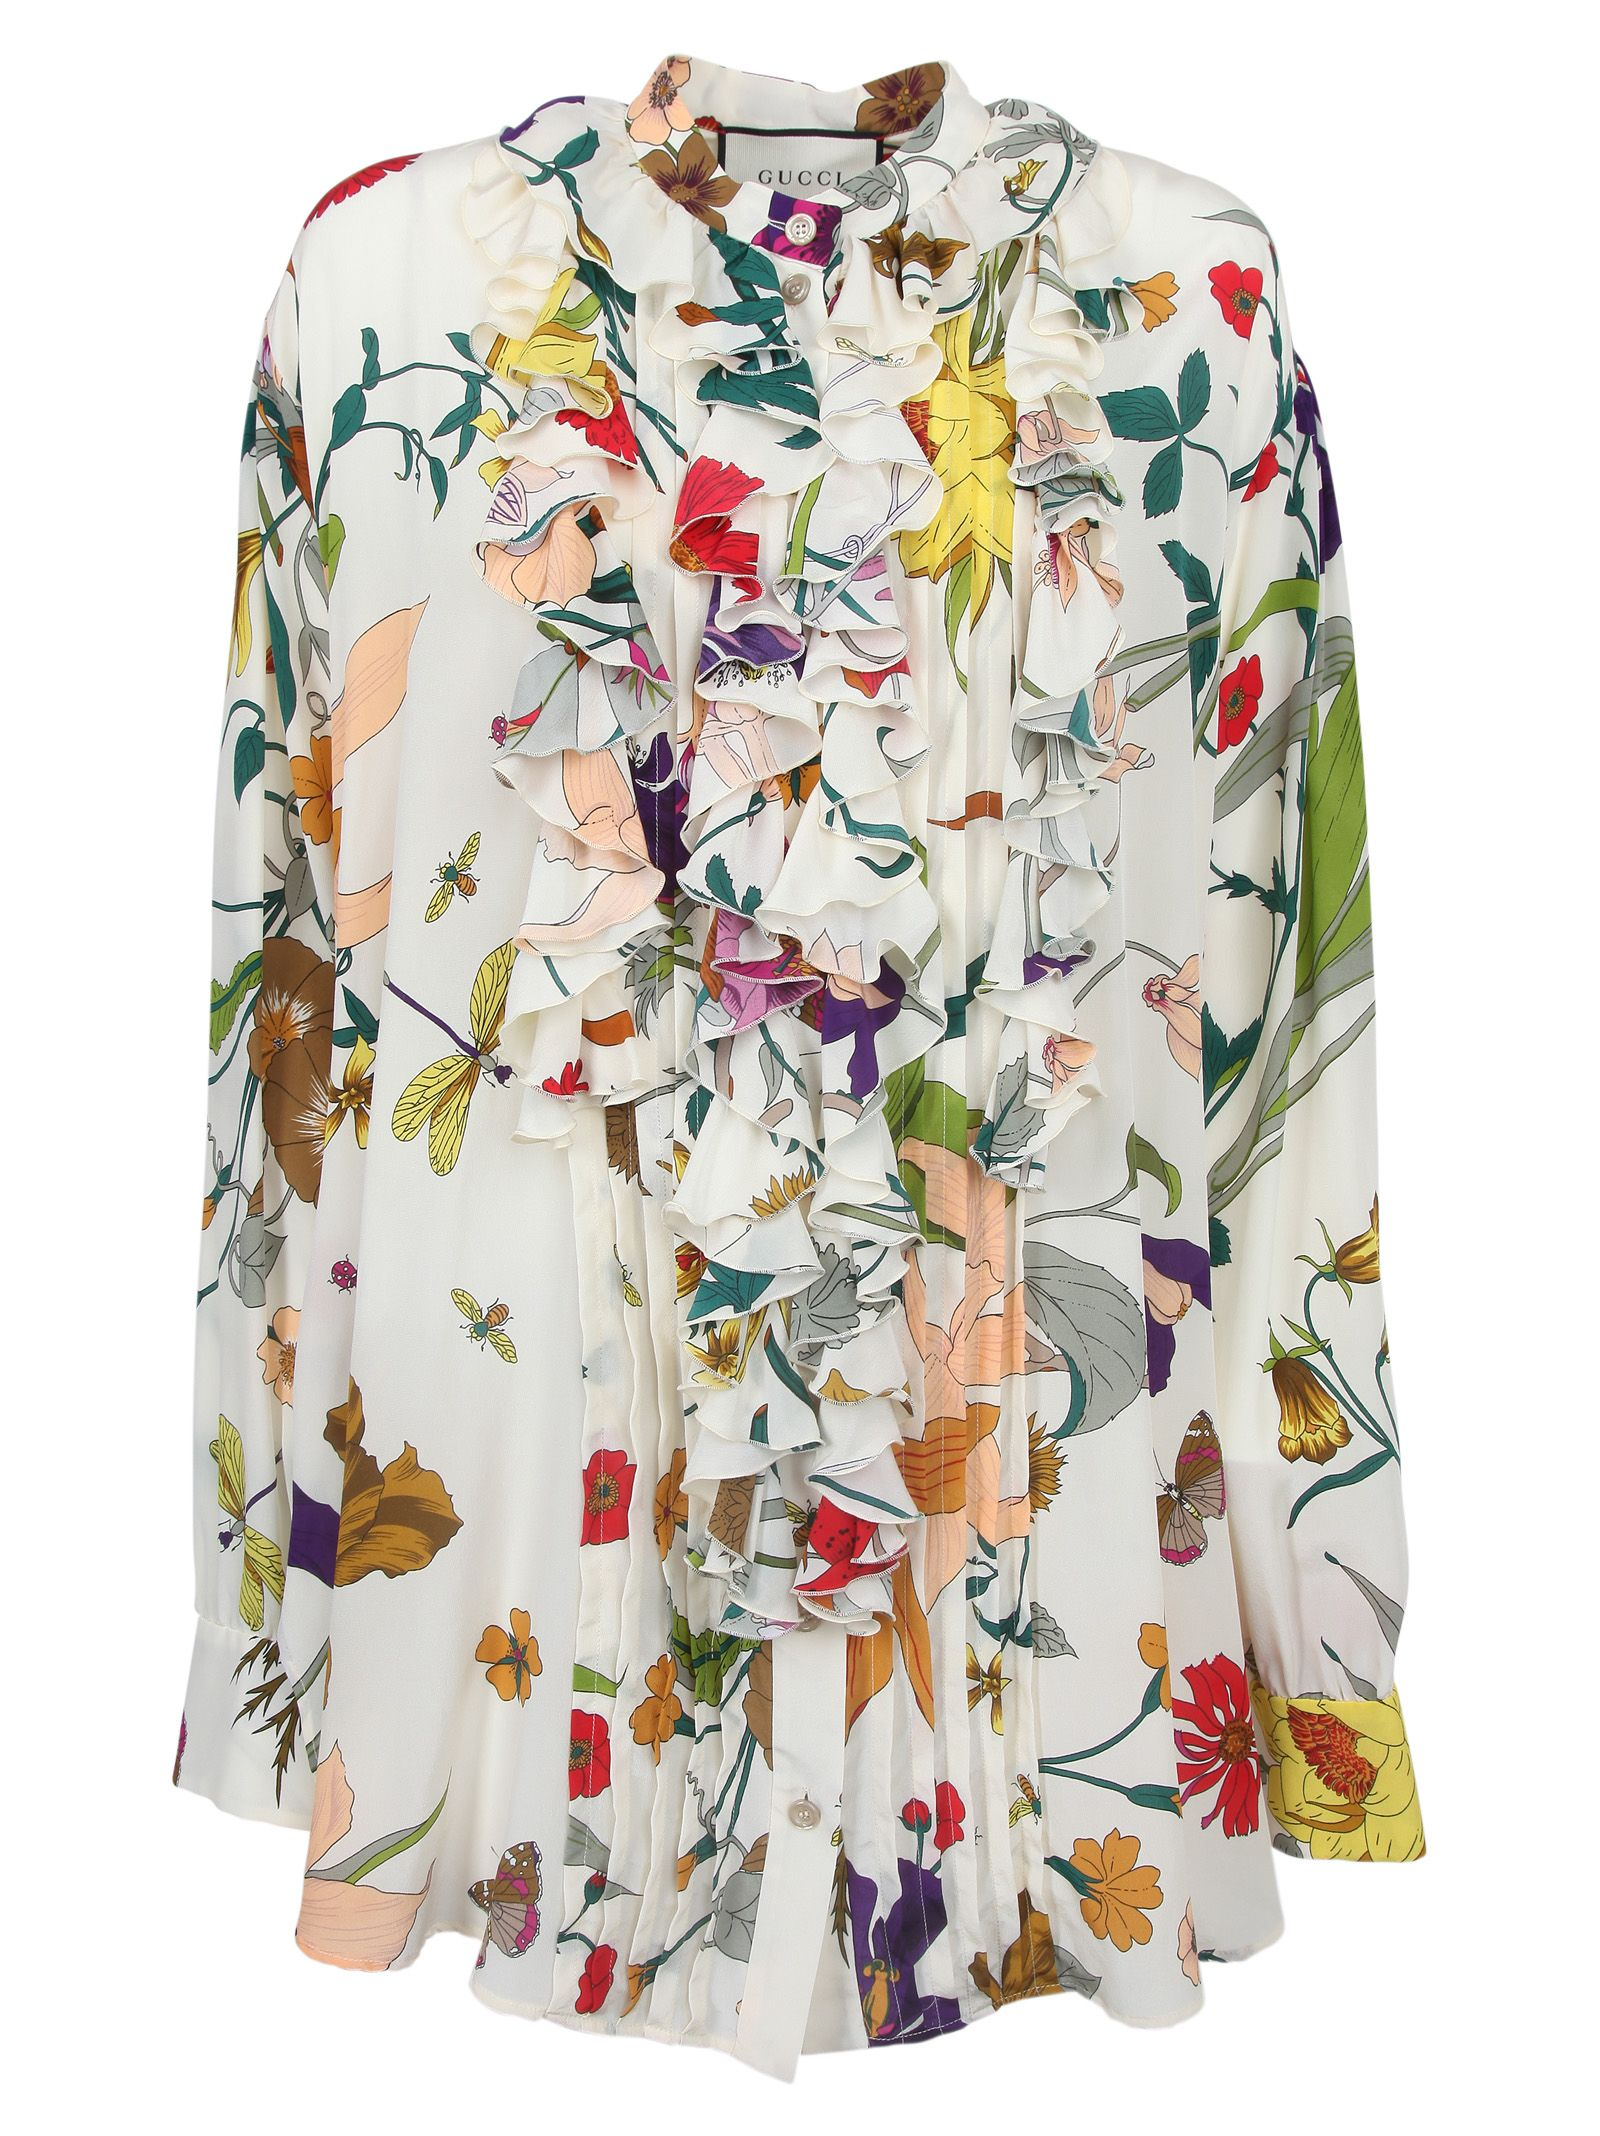 Gucci Gucci Floral Blouse Ivory Printed 10785311 Italist